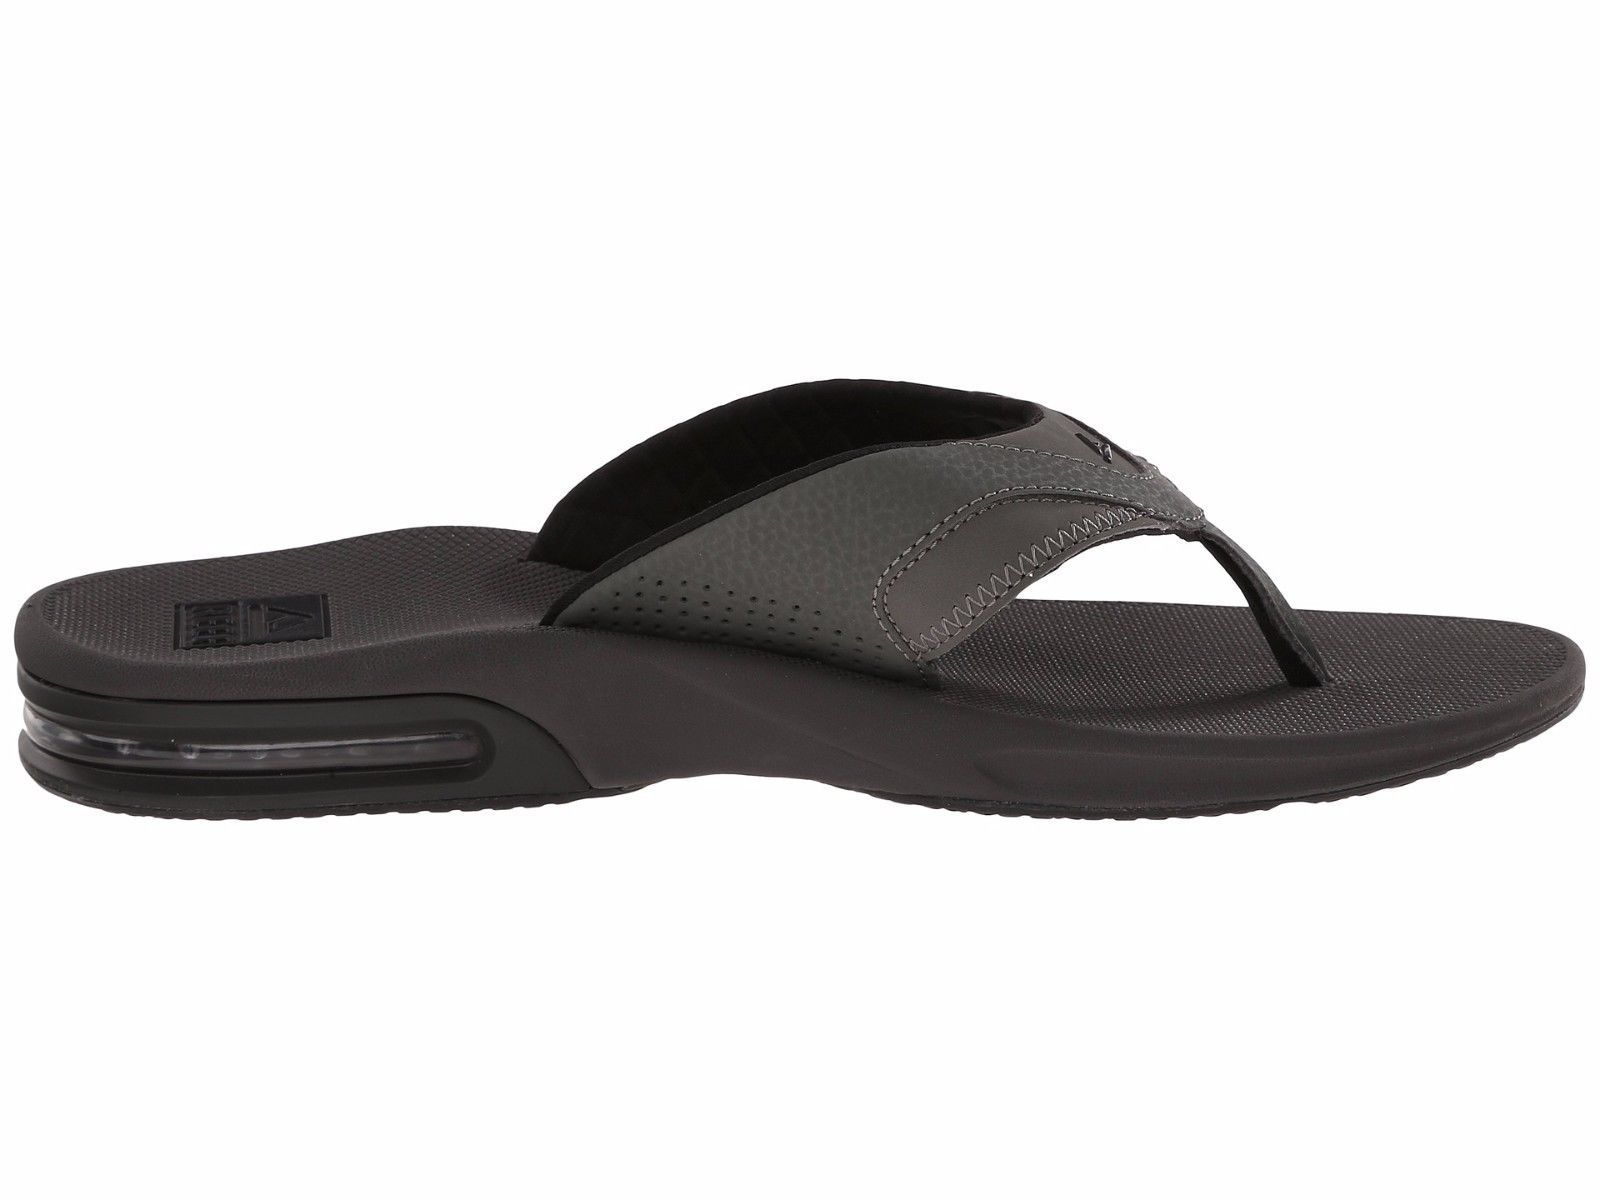 1bf8d461fc43 Reef Men s Fanning Bottle Opener Gray Black Thong Slide Flip Flop Size 4